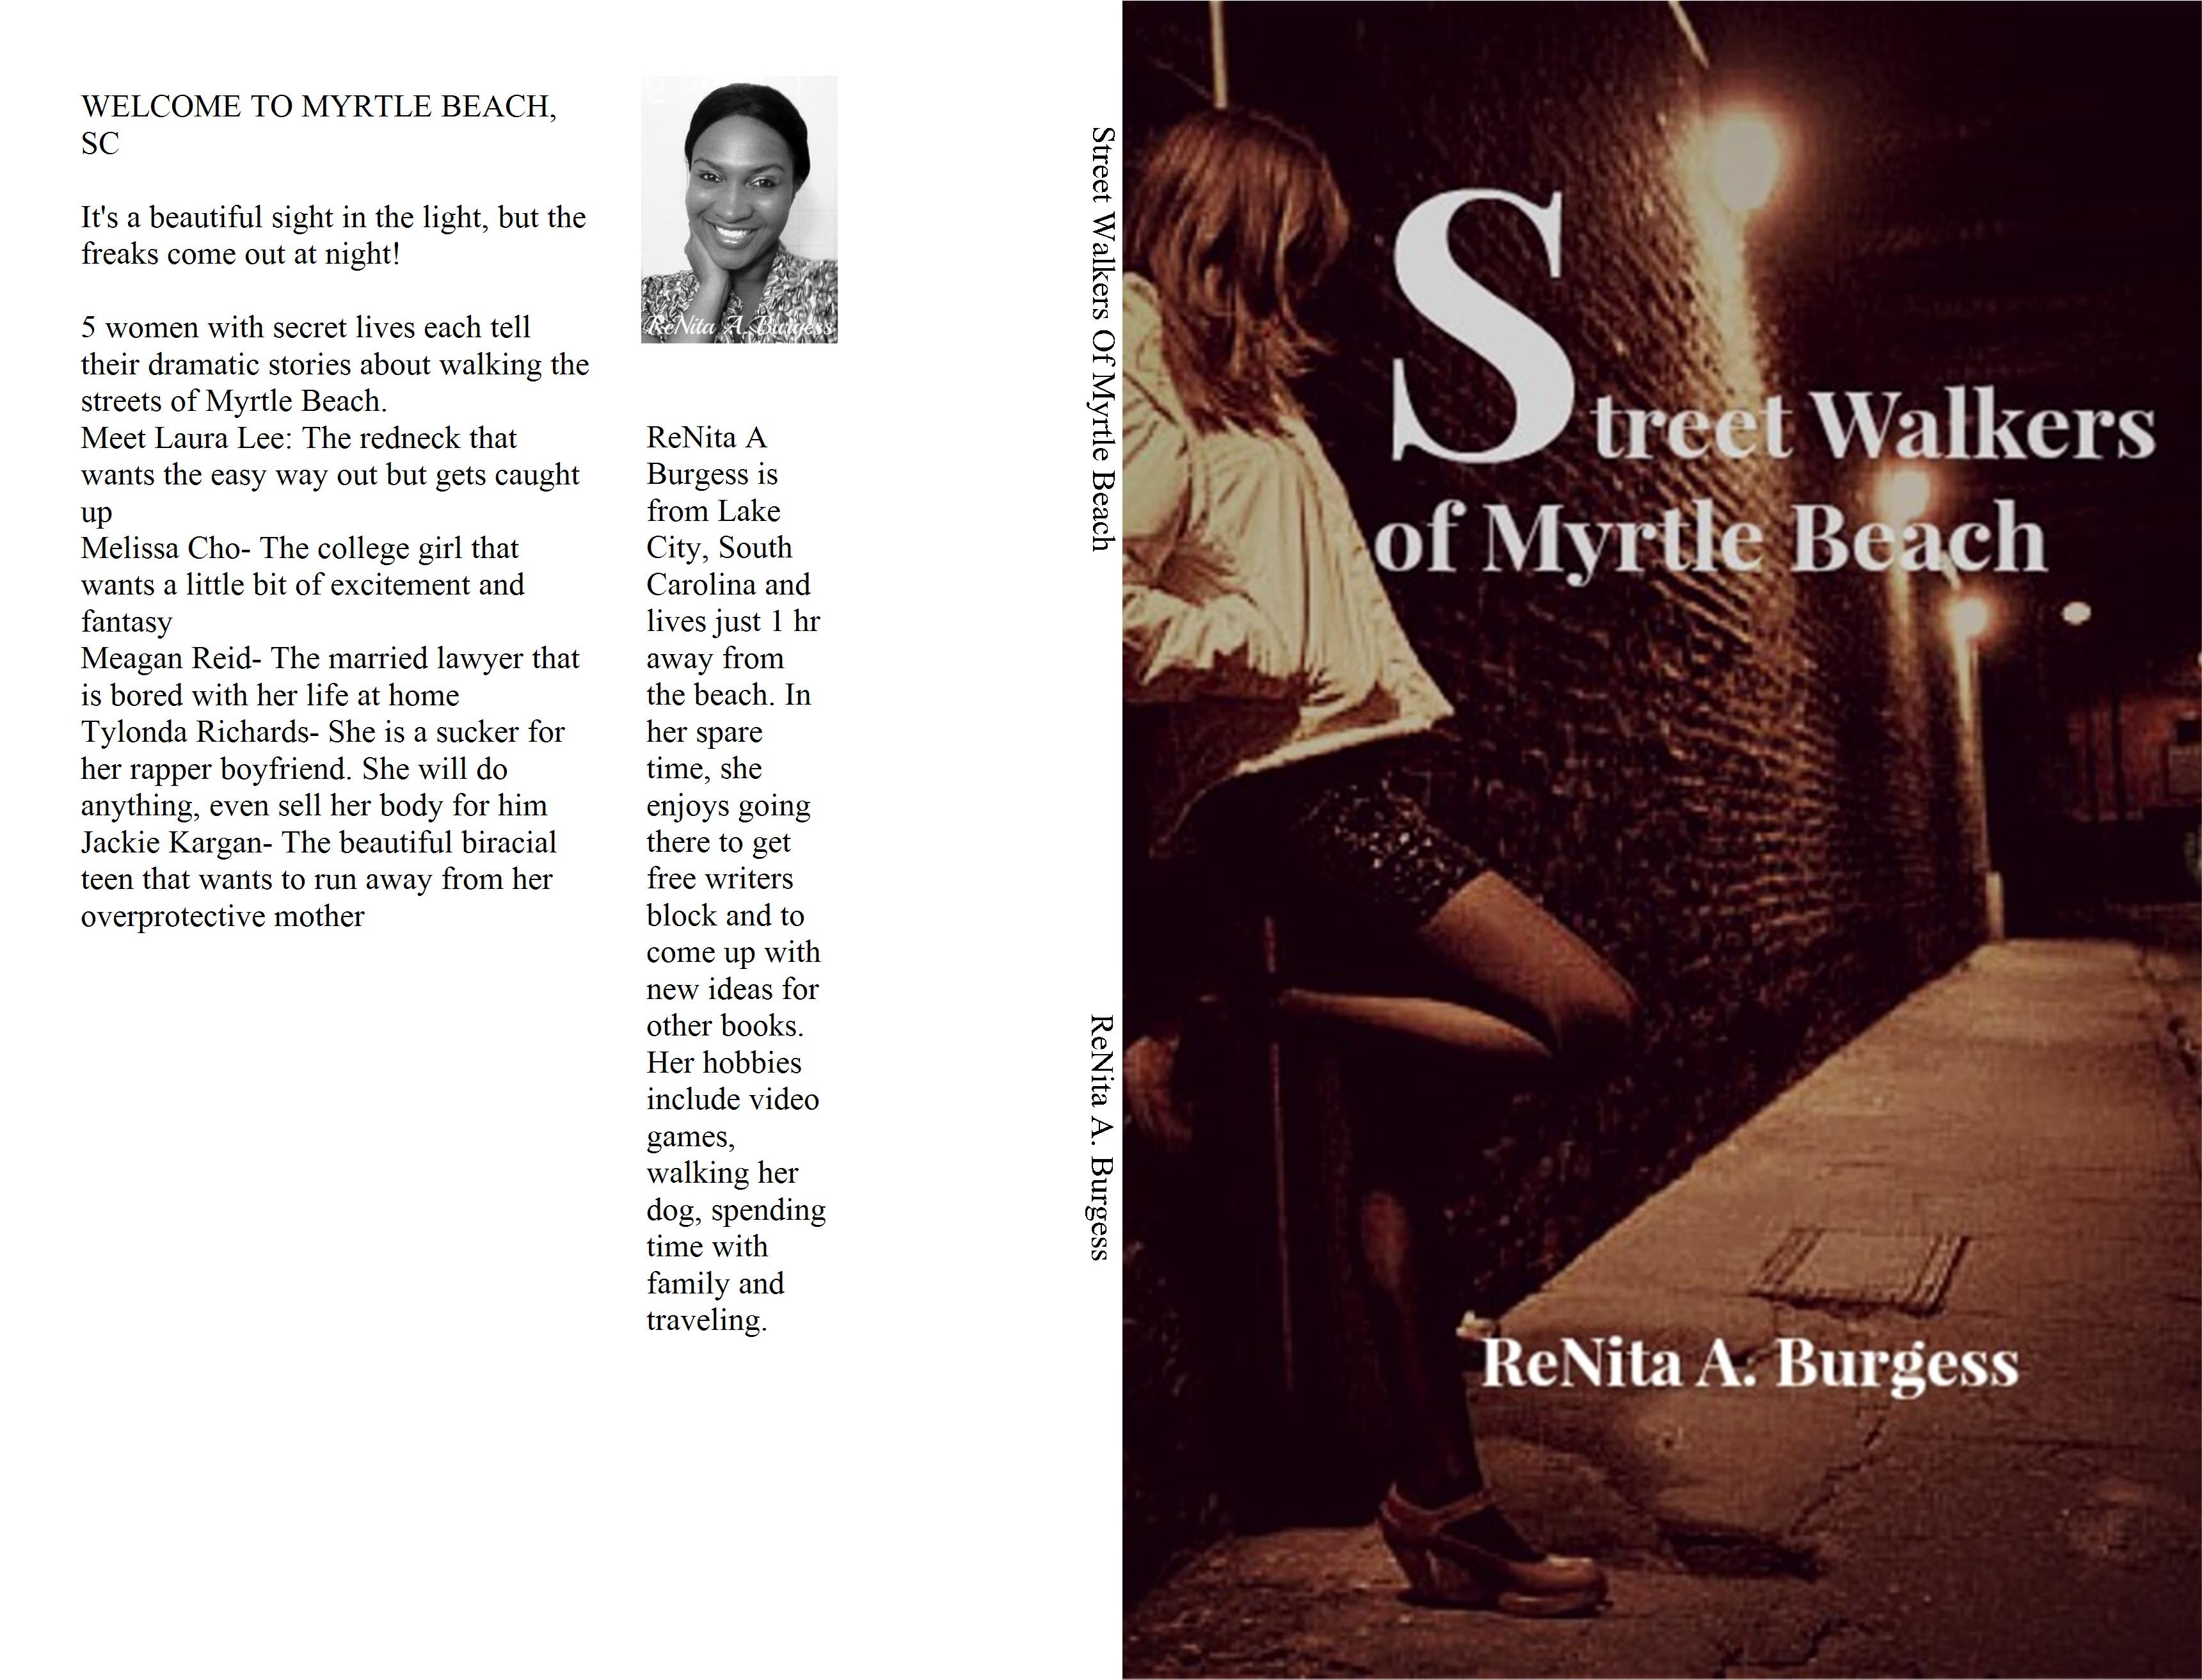 Street Walkers Of Myrtle Beach cover image